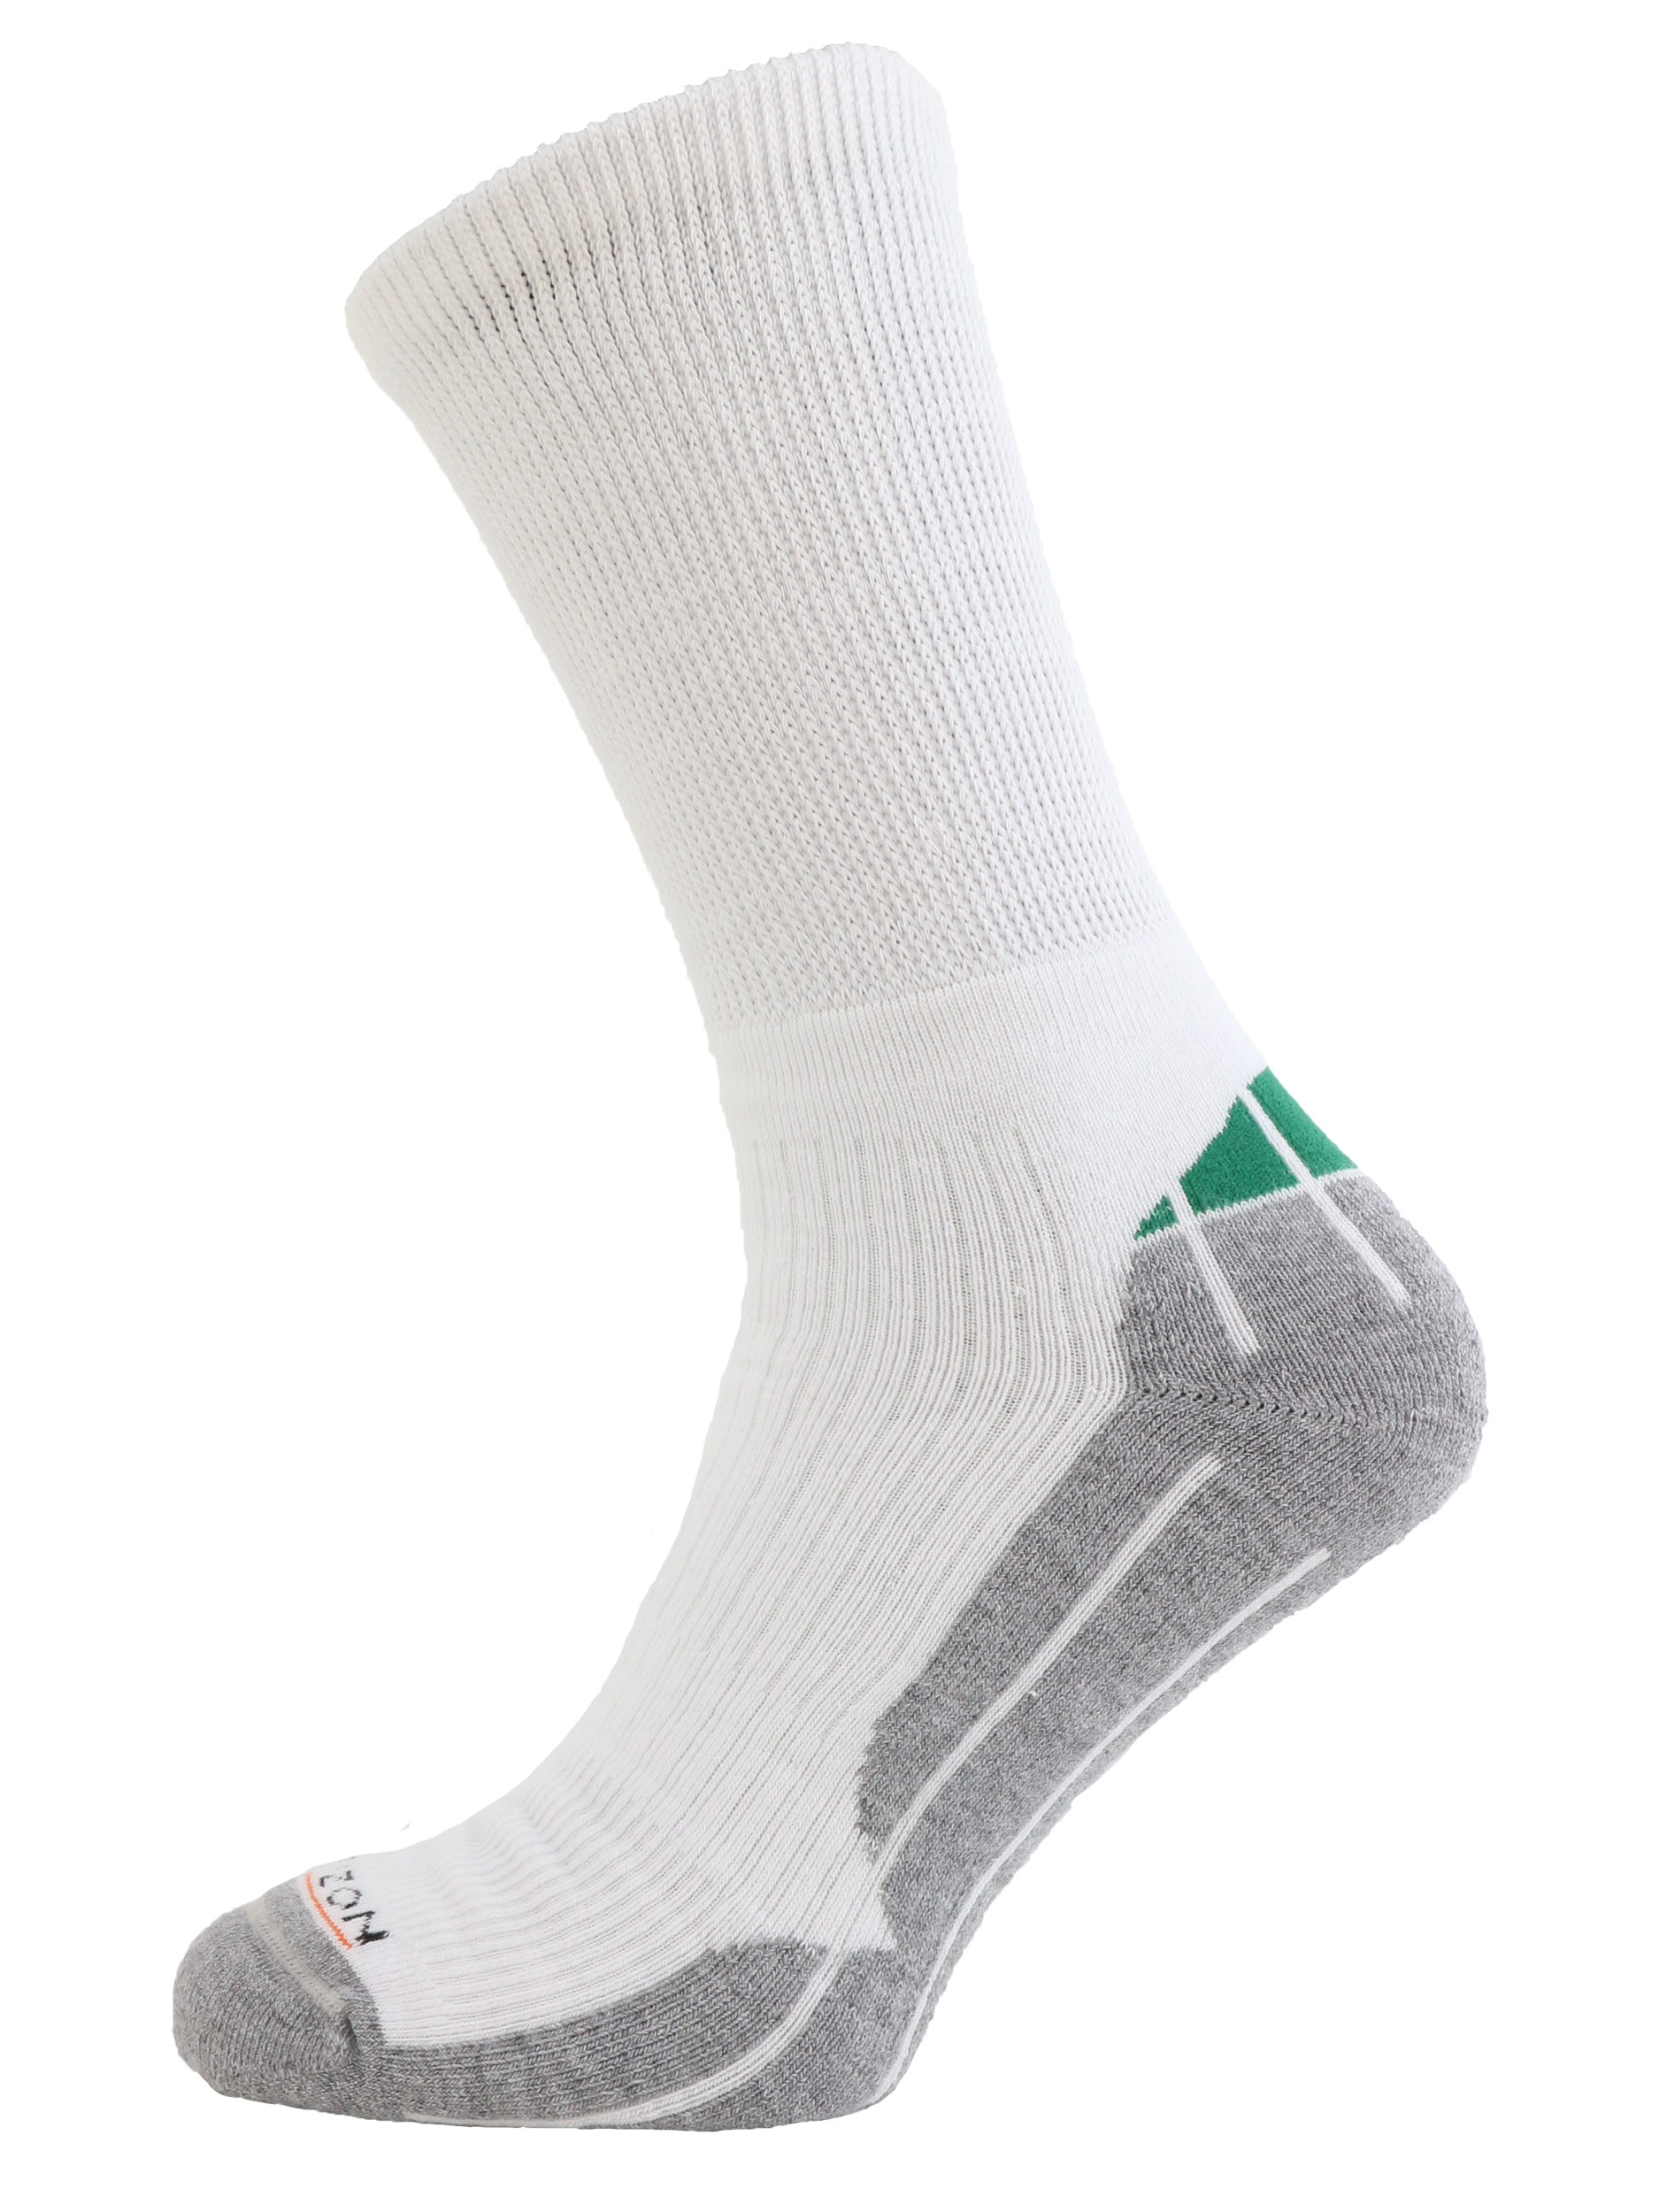 Coolmax Crew White/Green 8-12